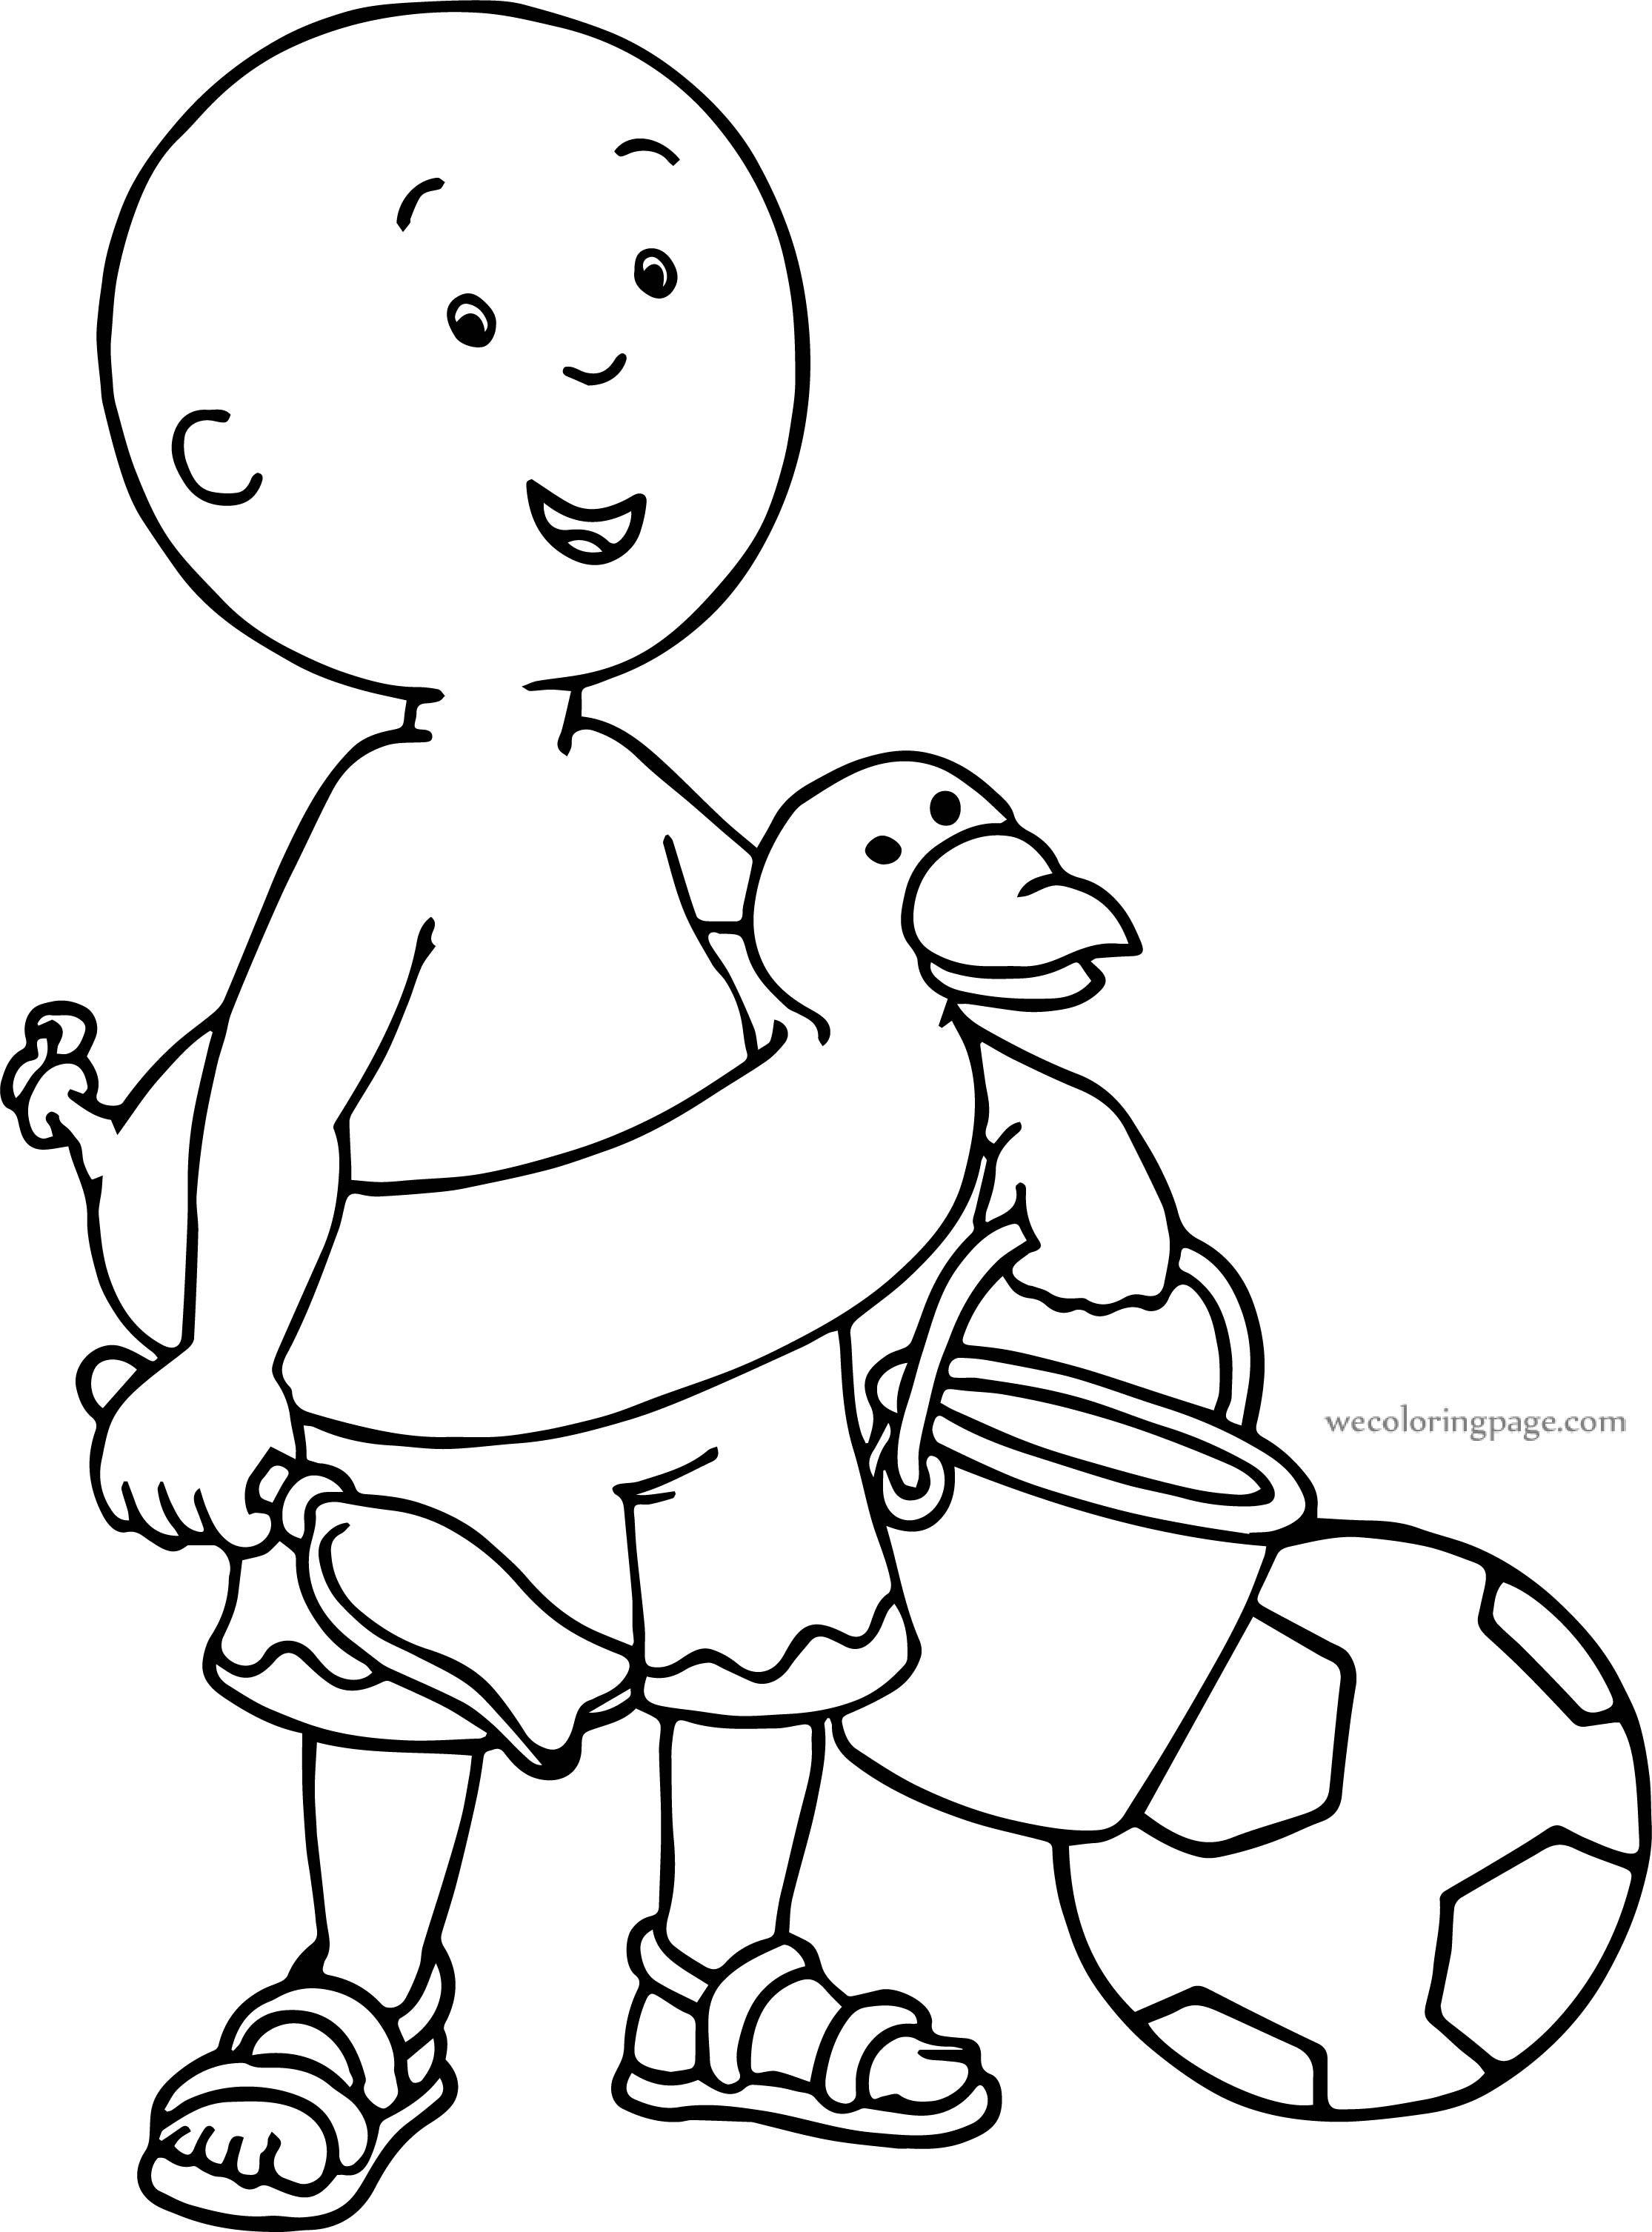 Caillou Beach Soccer Duck Summer Coloring Page